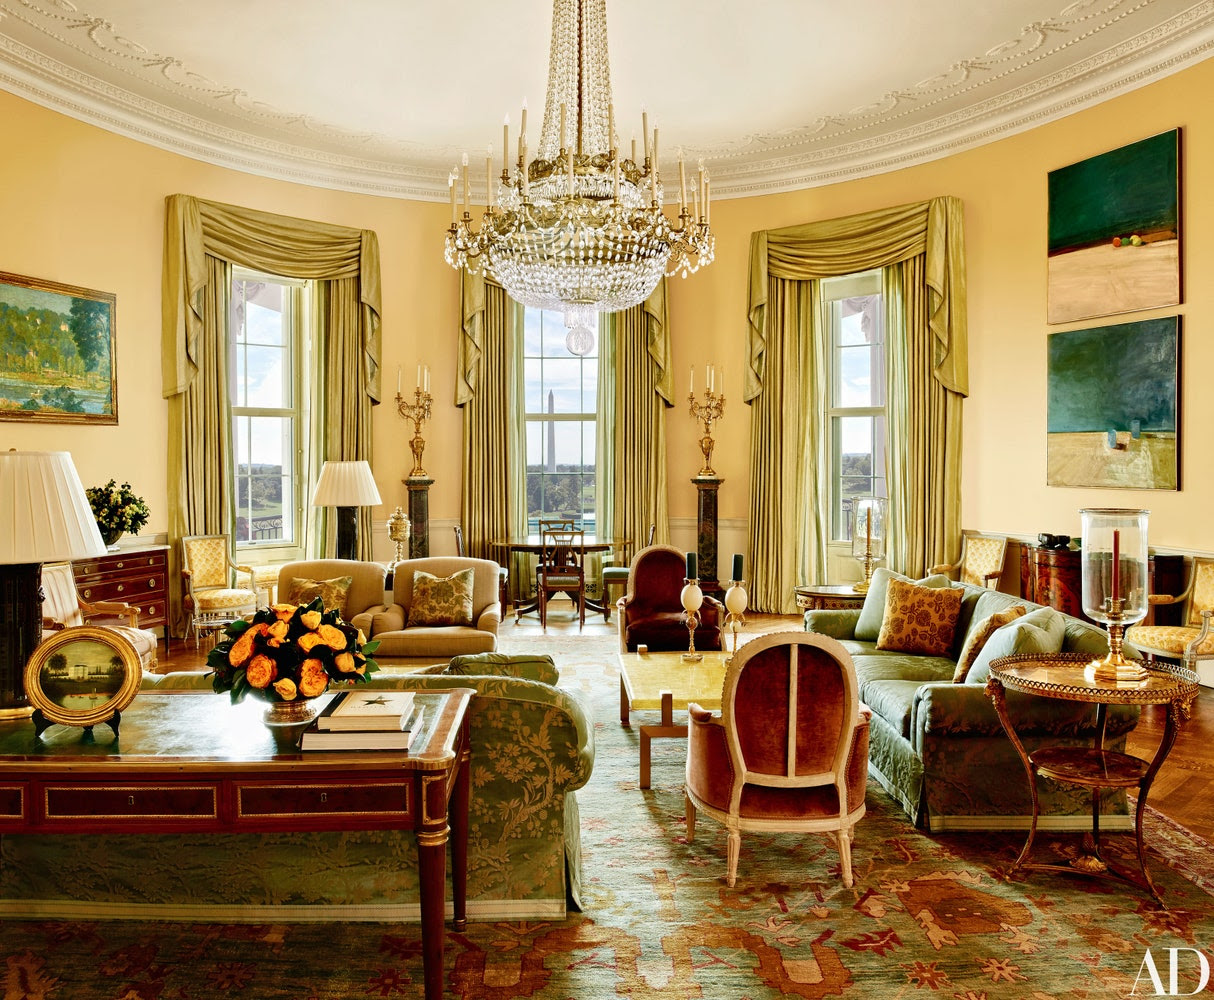 Smith mellowed the Yellow Oval Room with smoky browns, greens, golds, and blues. The 1978 Camp David peace accords were signed at the antique Denis-Louis Ancellet desk in the foreground.